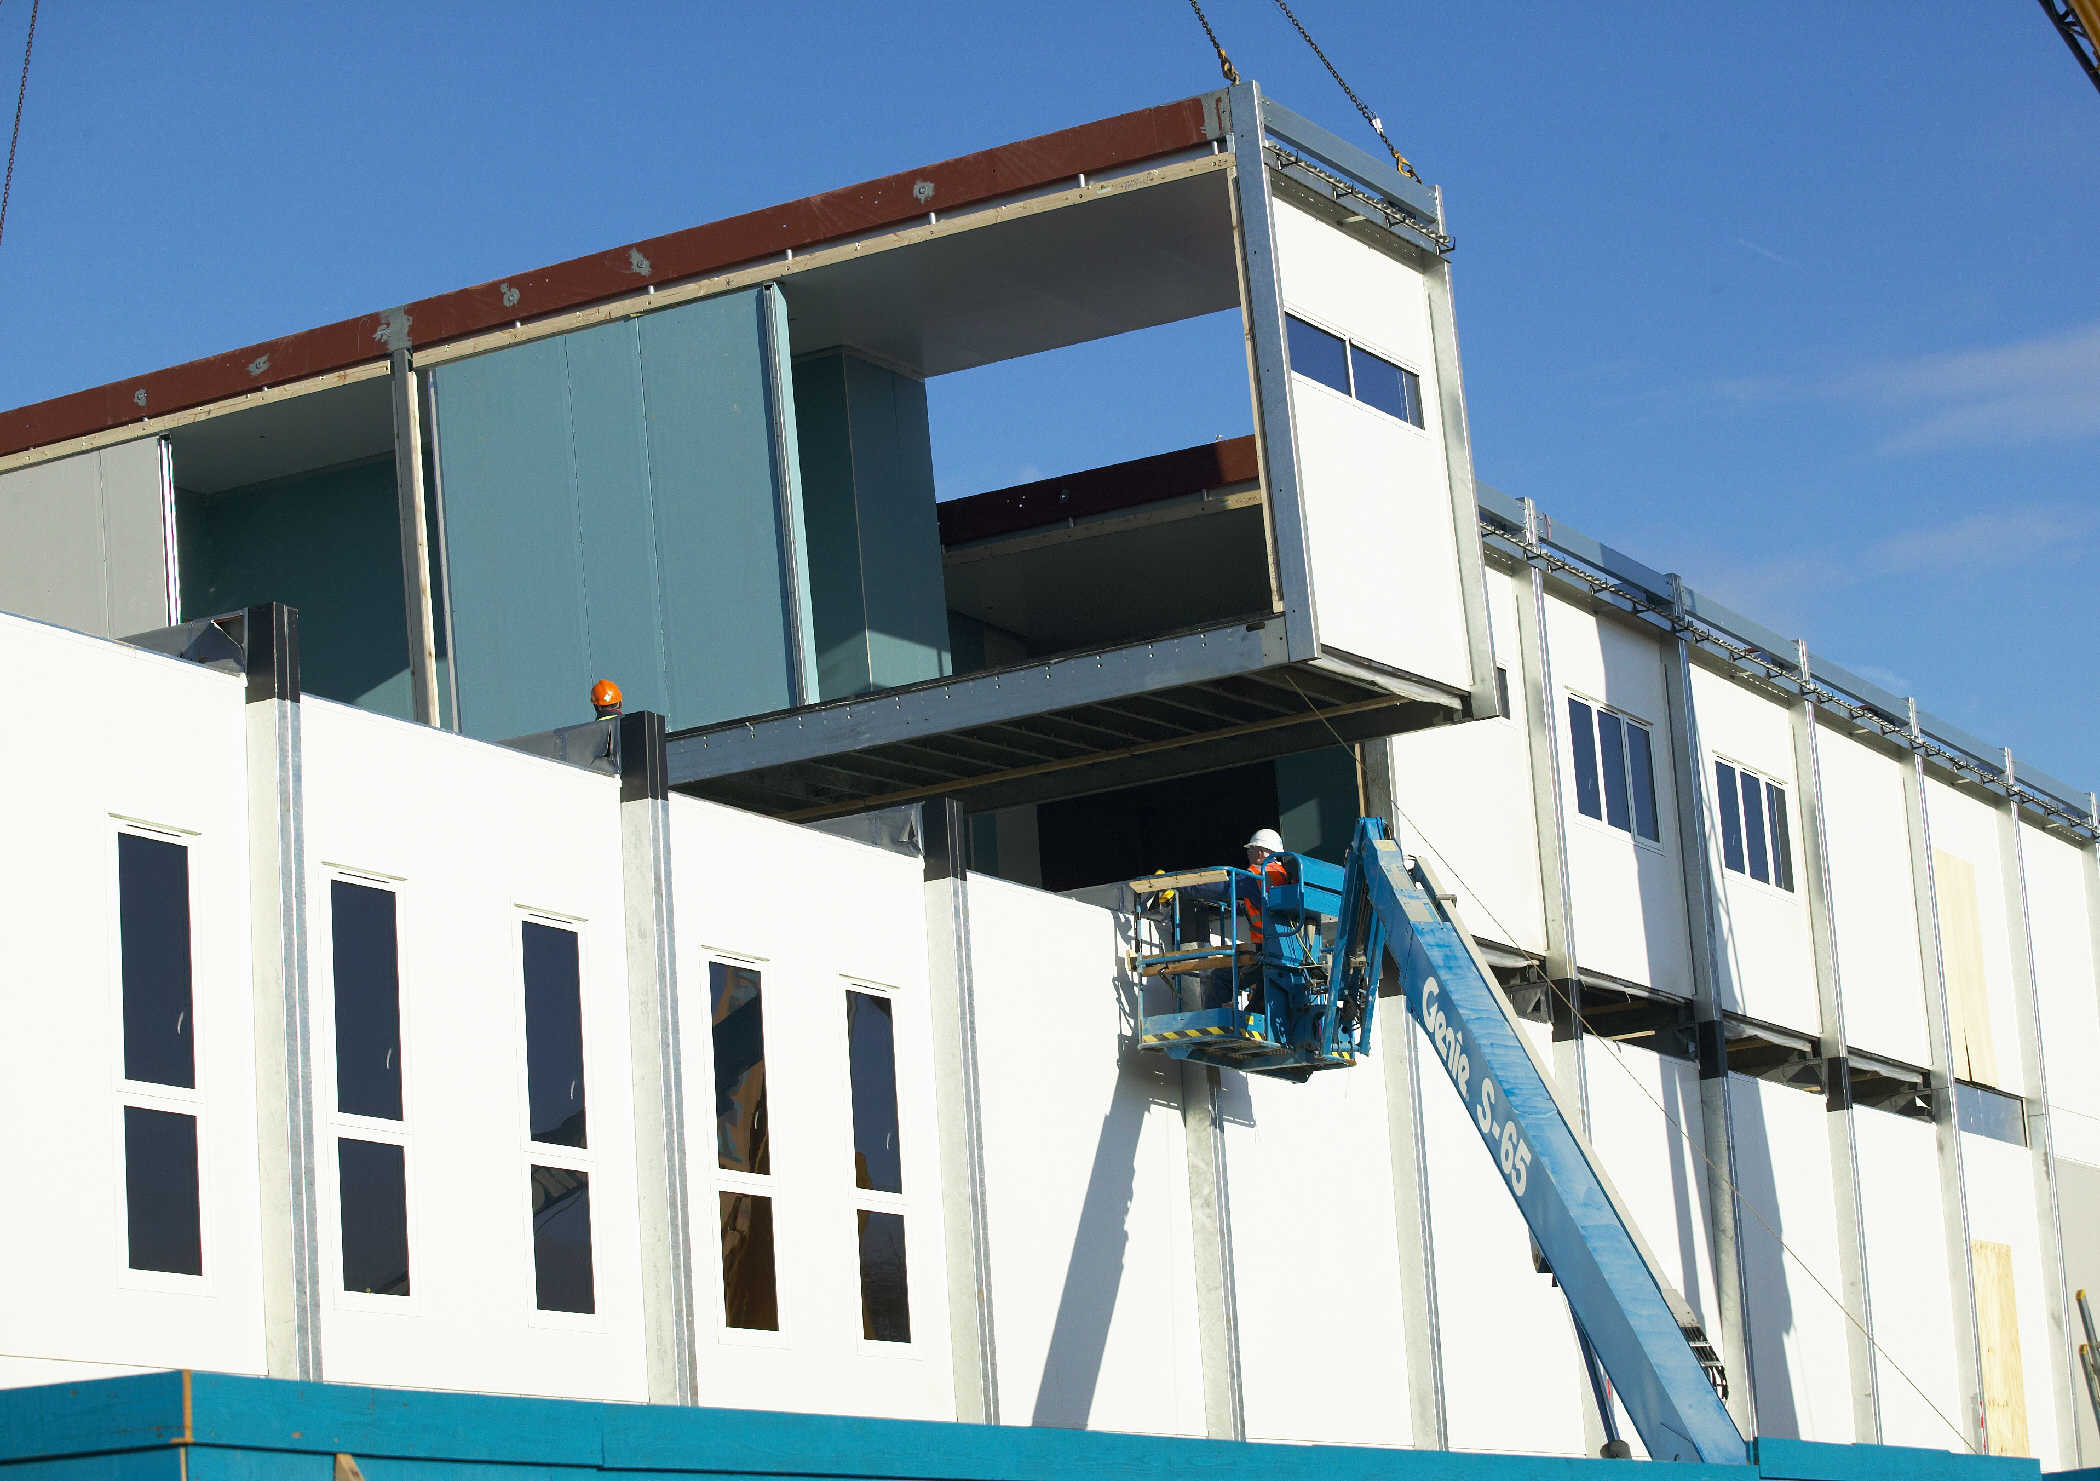 The myths of modular construction designing buildings wiki for Building construction